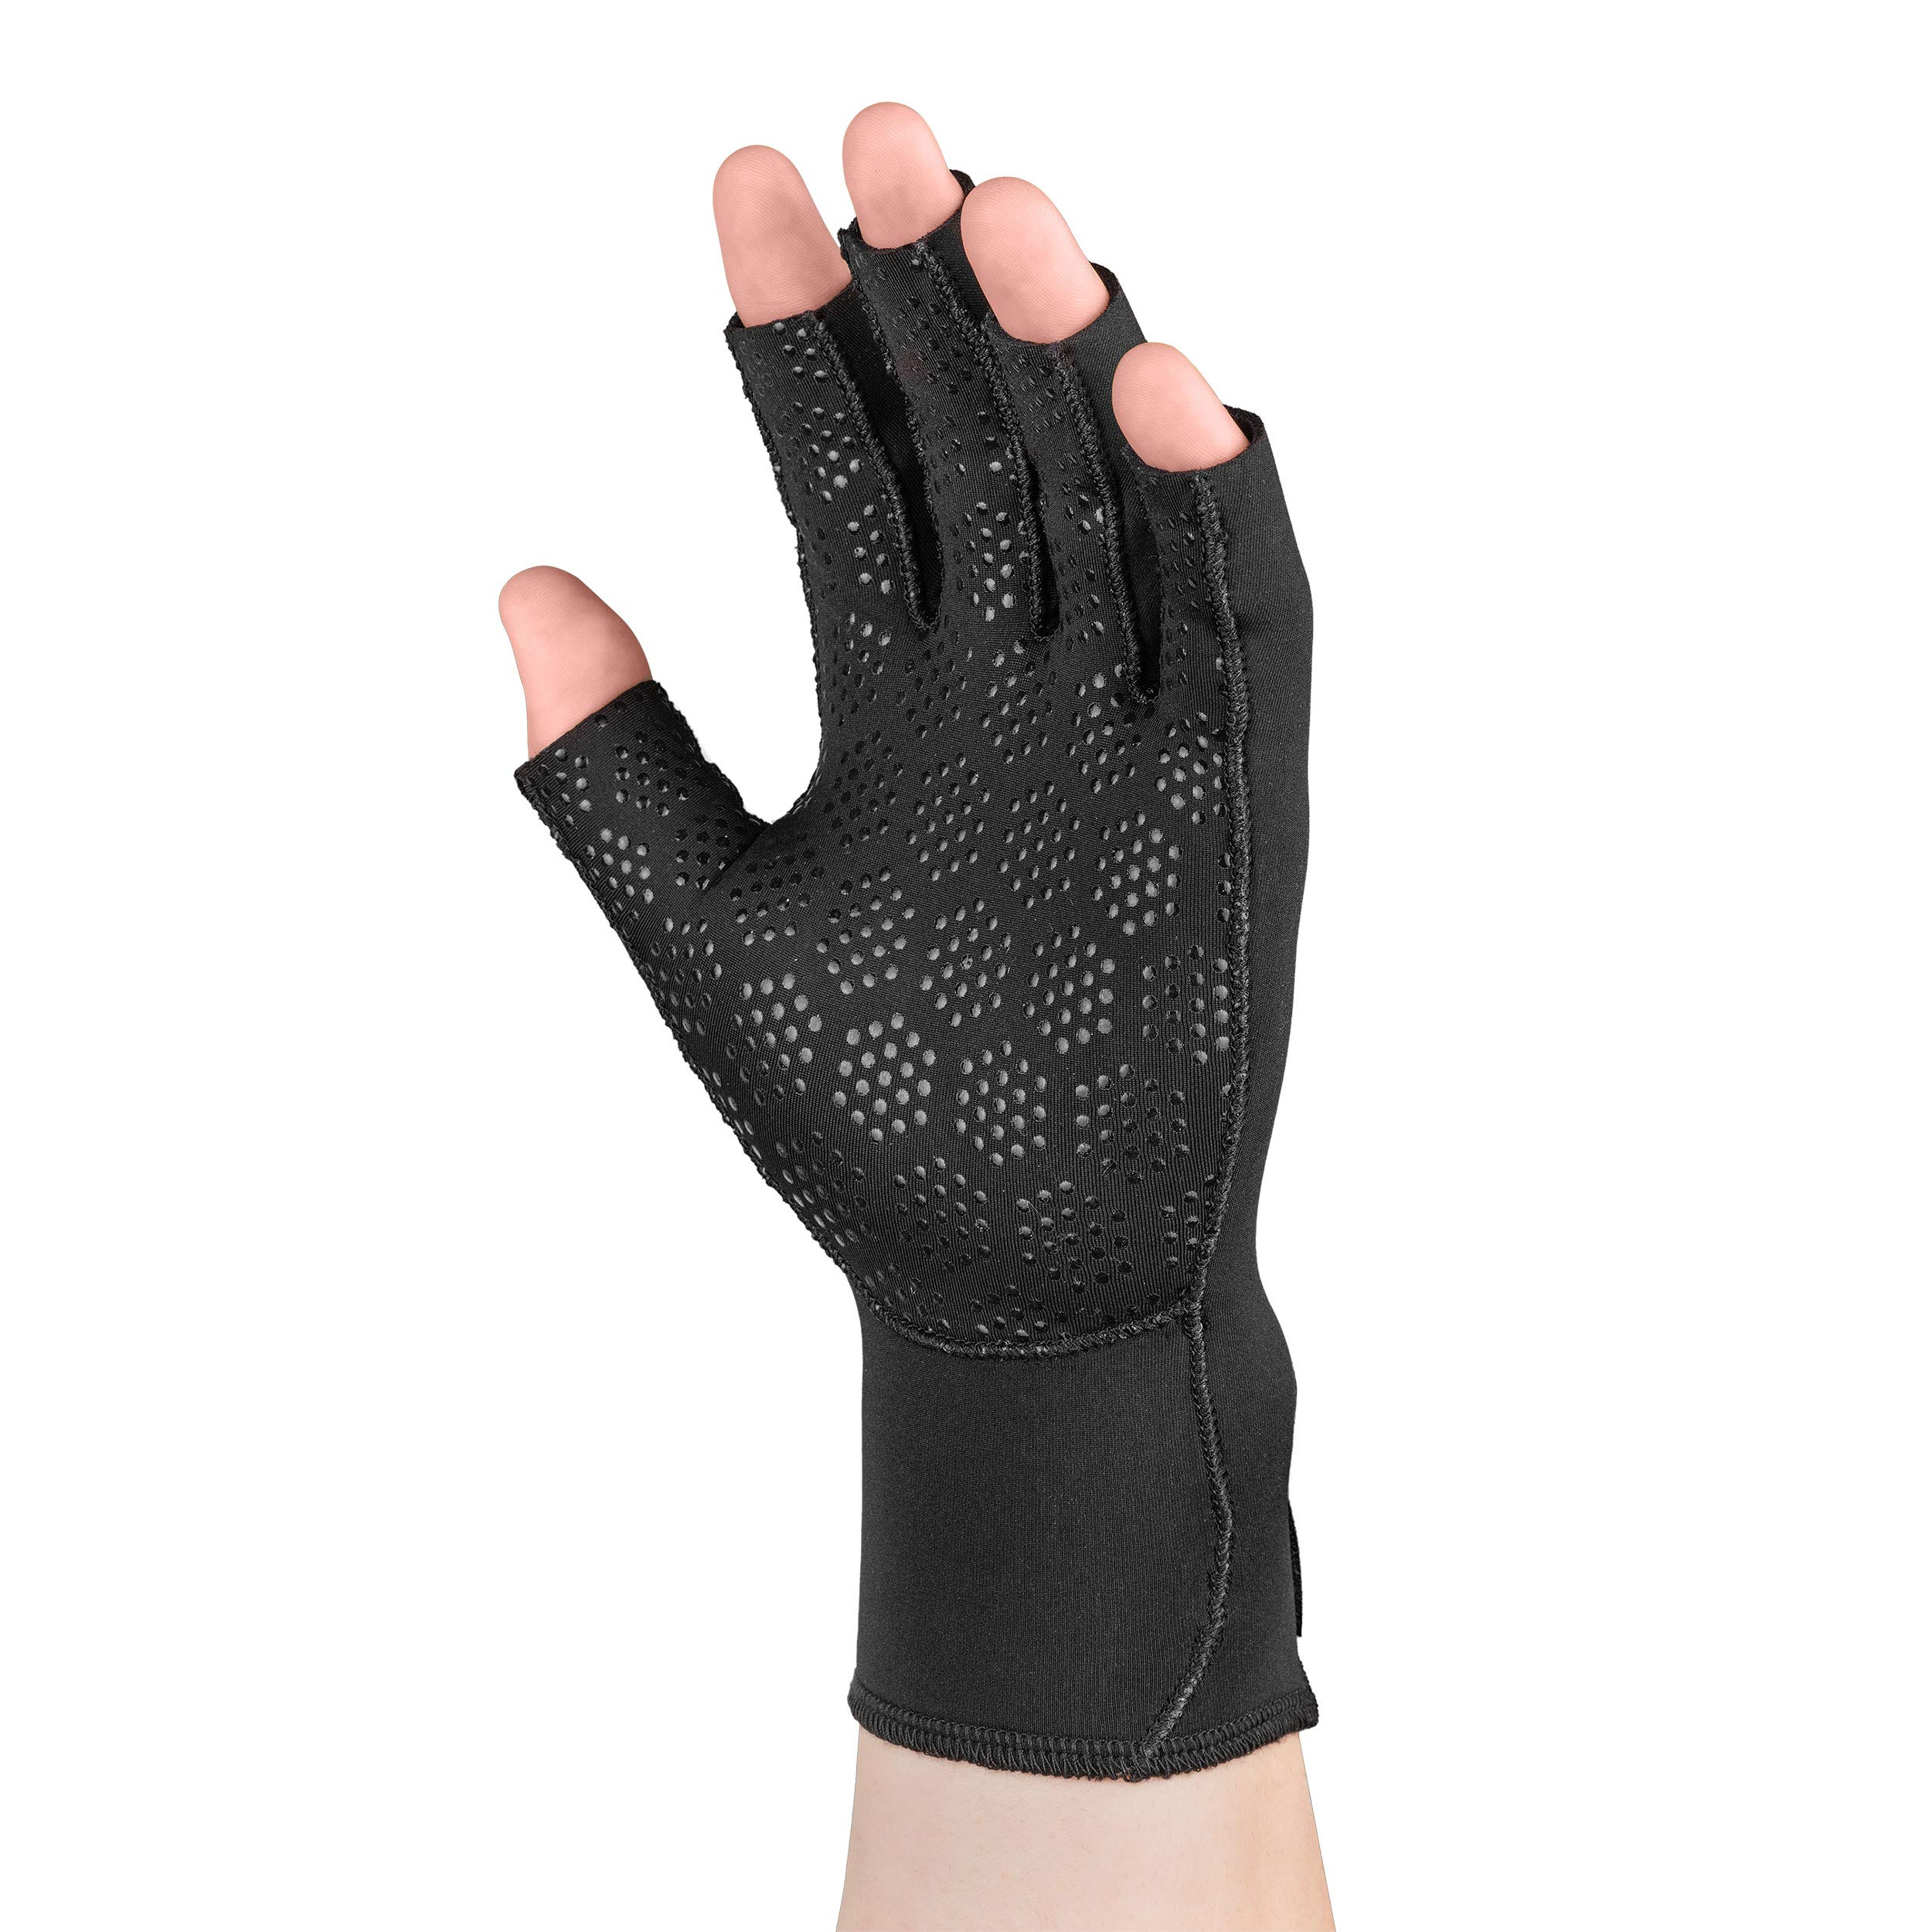 Swede-O Thermal Arthritic Gloves, Pair - Large by Swede-O (Image #2)